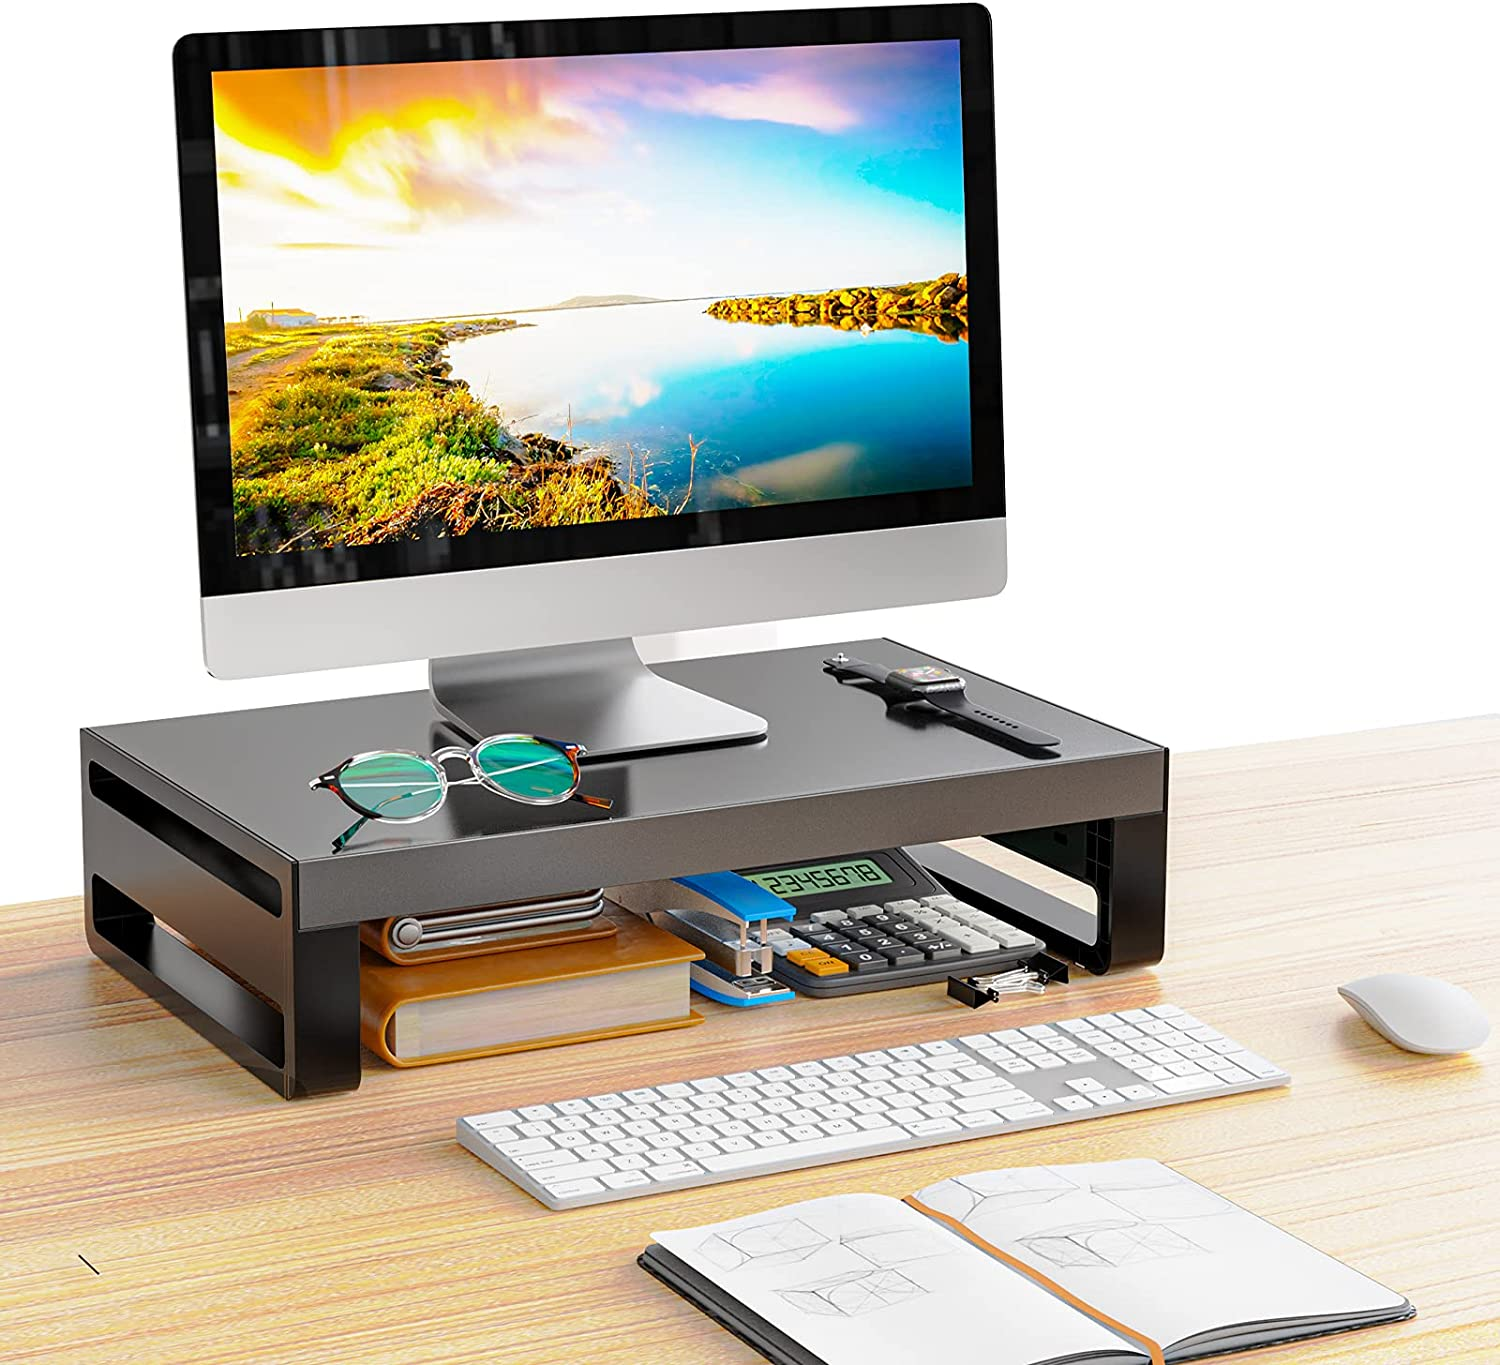 Monitor Stand Riser, Aluminum Desktop Stand with Dust Cover for Computer, iMac, Laptop, Printer, Notebook and All Plat Screen Display, Ergonomic Tabletop Organizer with Vented Metal, Black (Small)